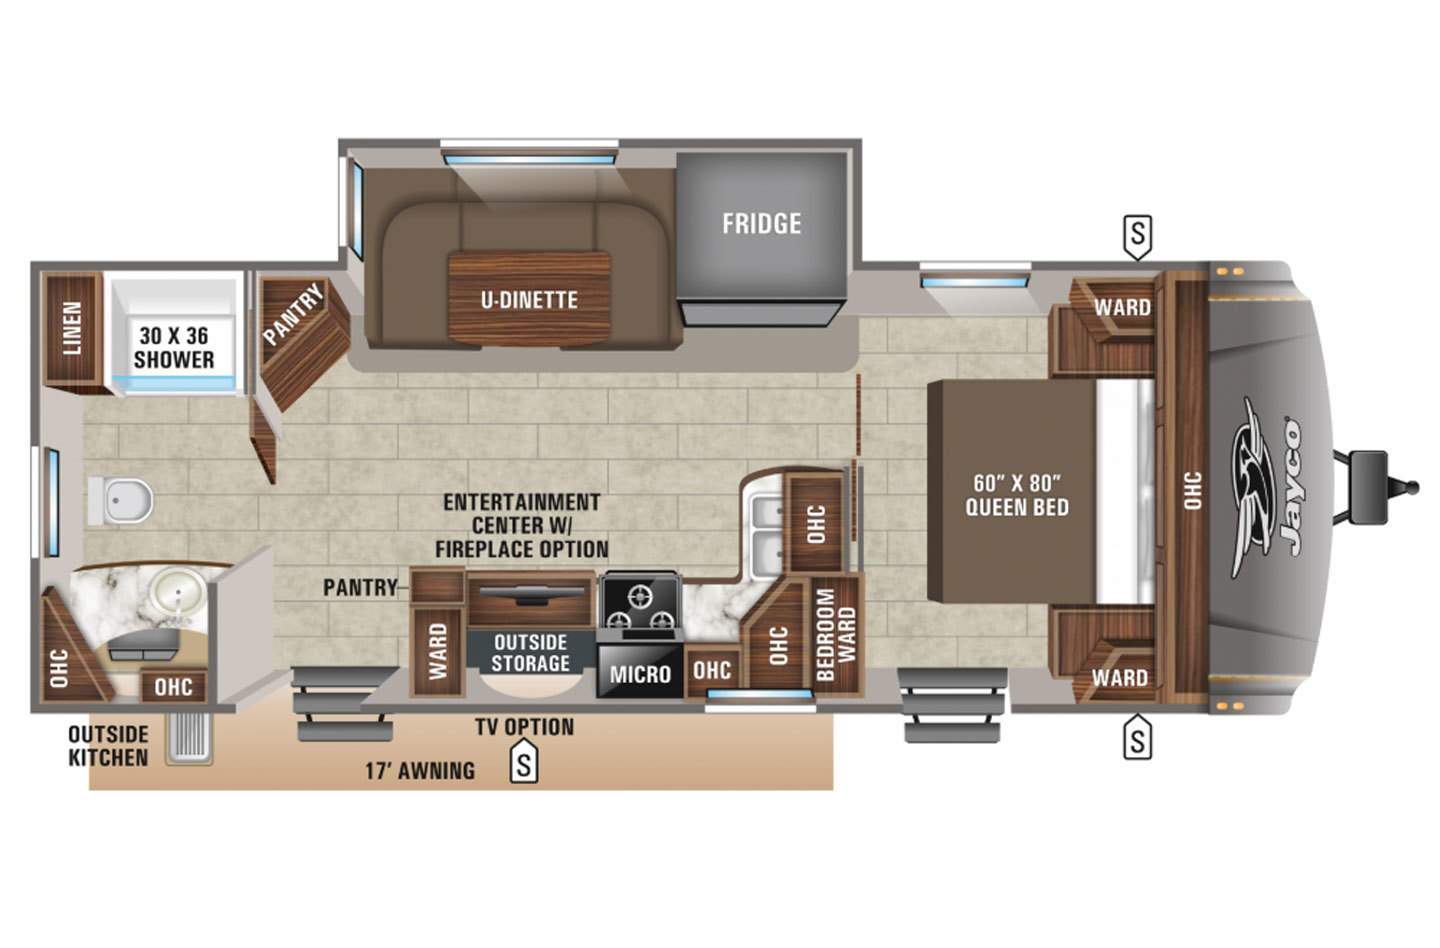 2020 Keystone Passport GT 2710RBWE Floorplan